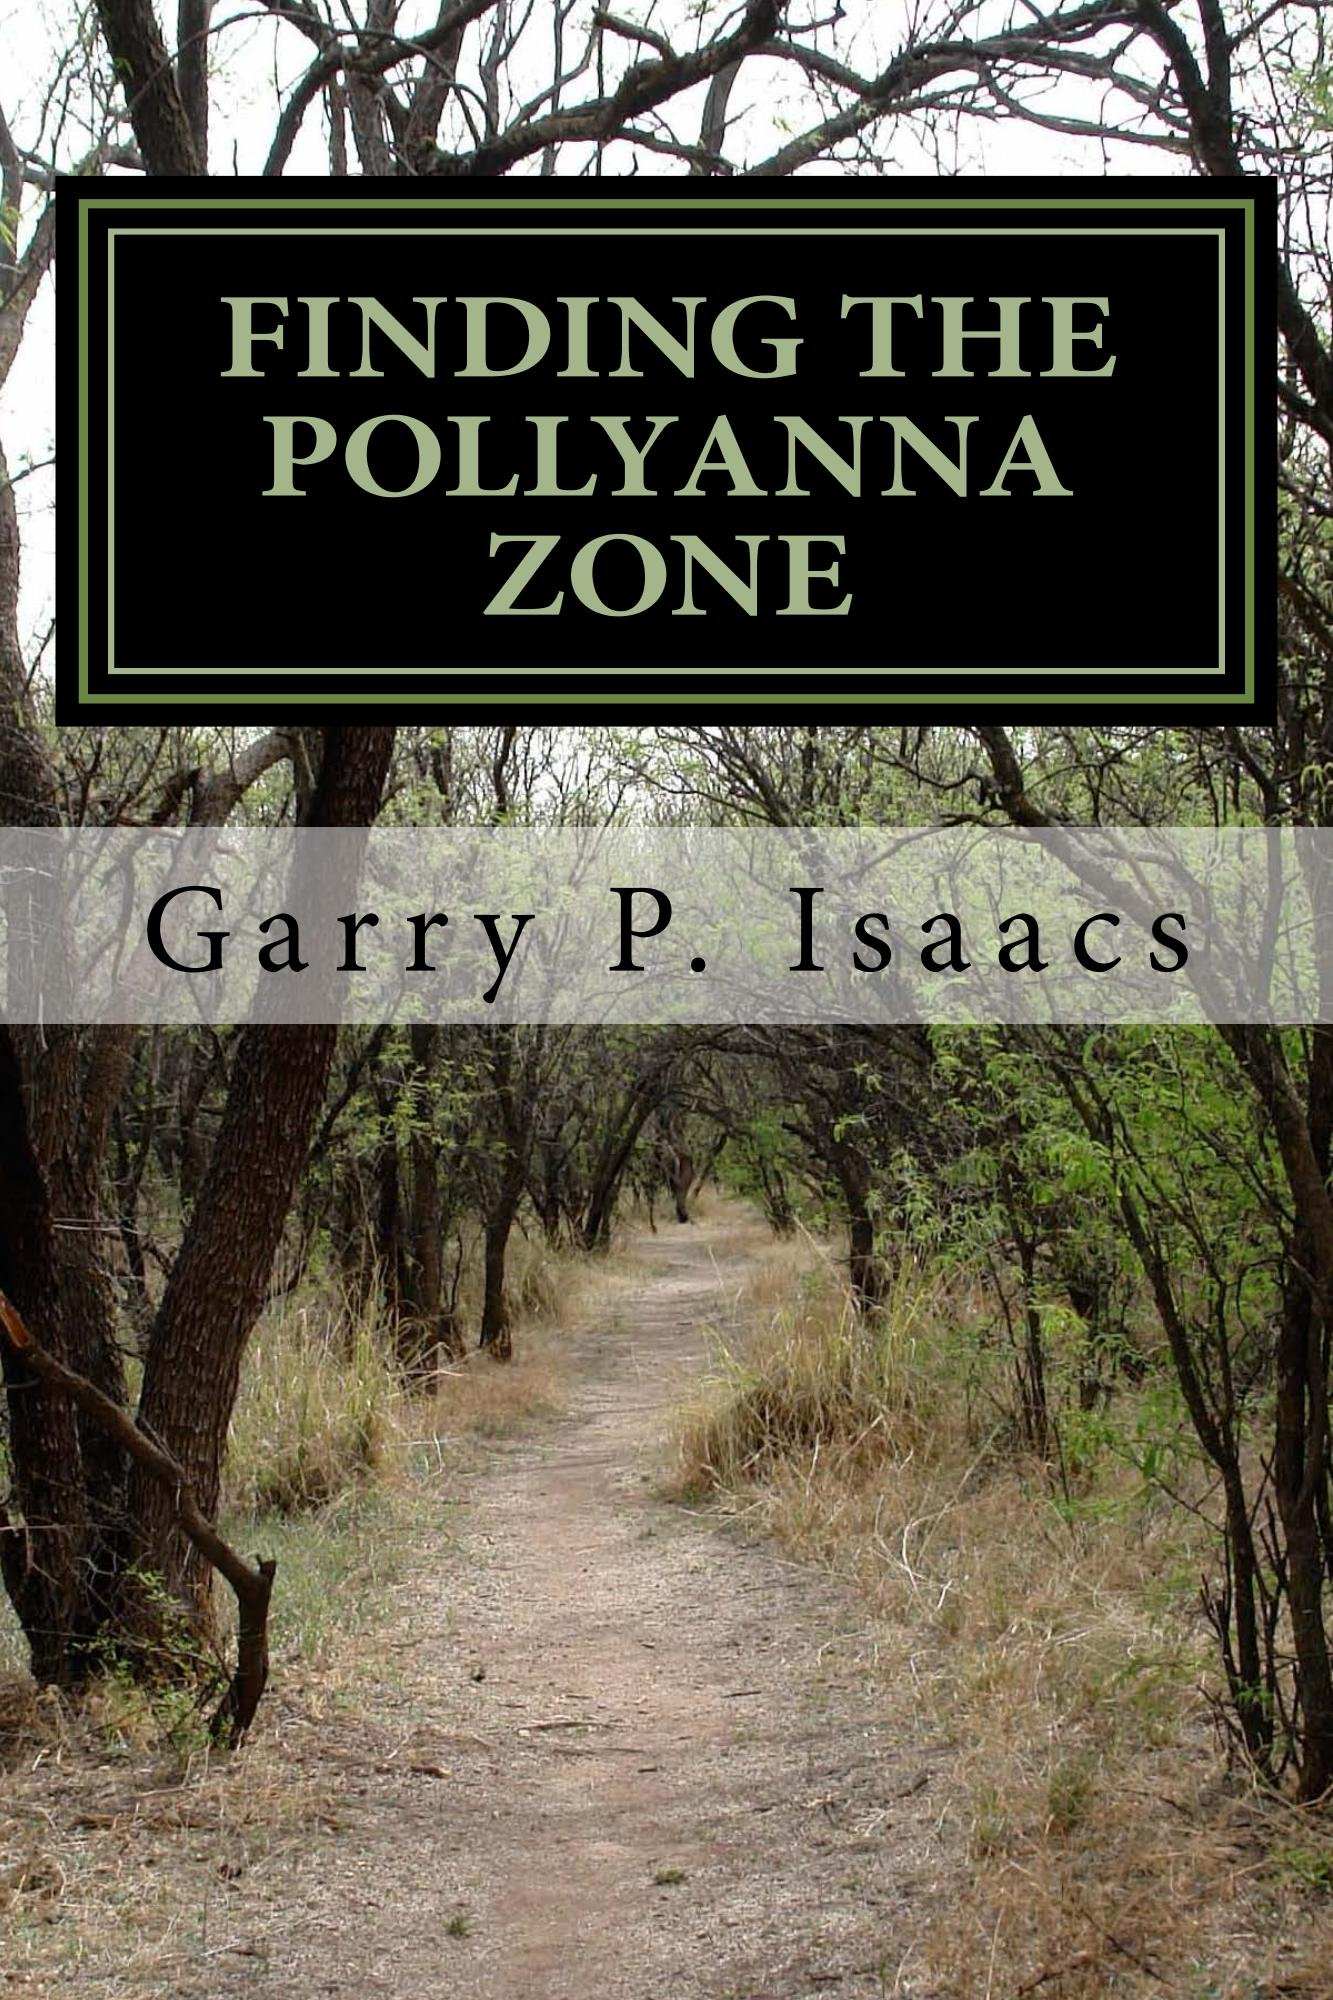 FINDING THE POLLYANNA ZONE 2nd edition: The Corporate Government Establishment vs Micro-Energy and the Clean AIr Wars